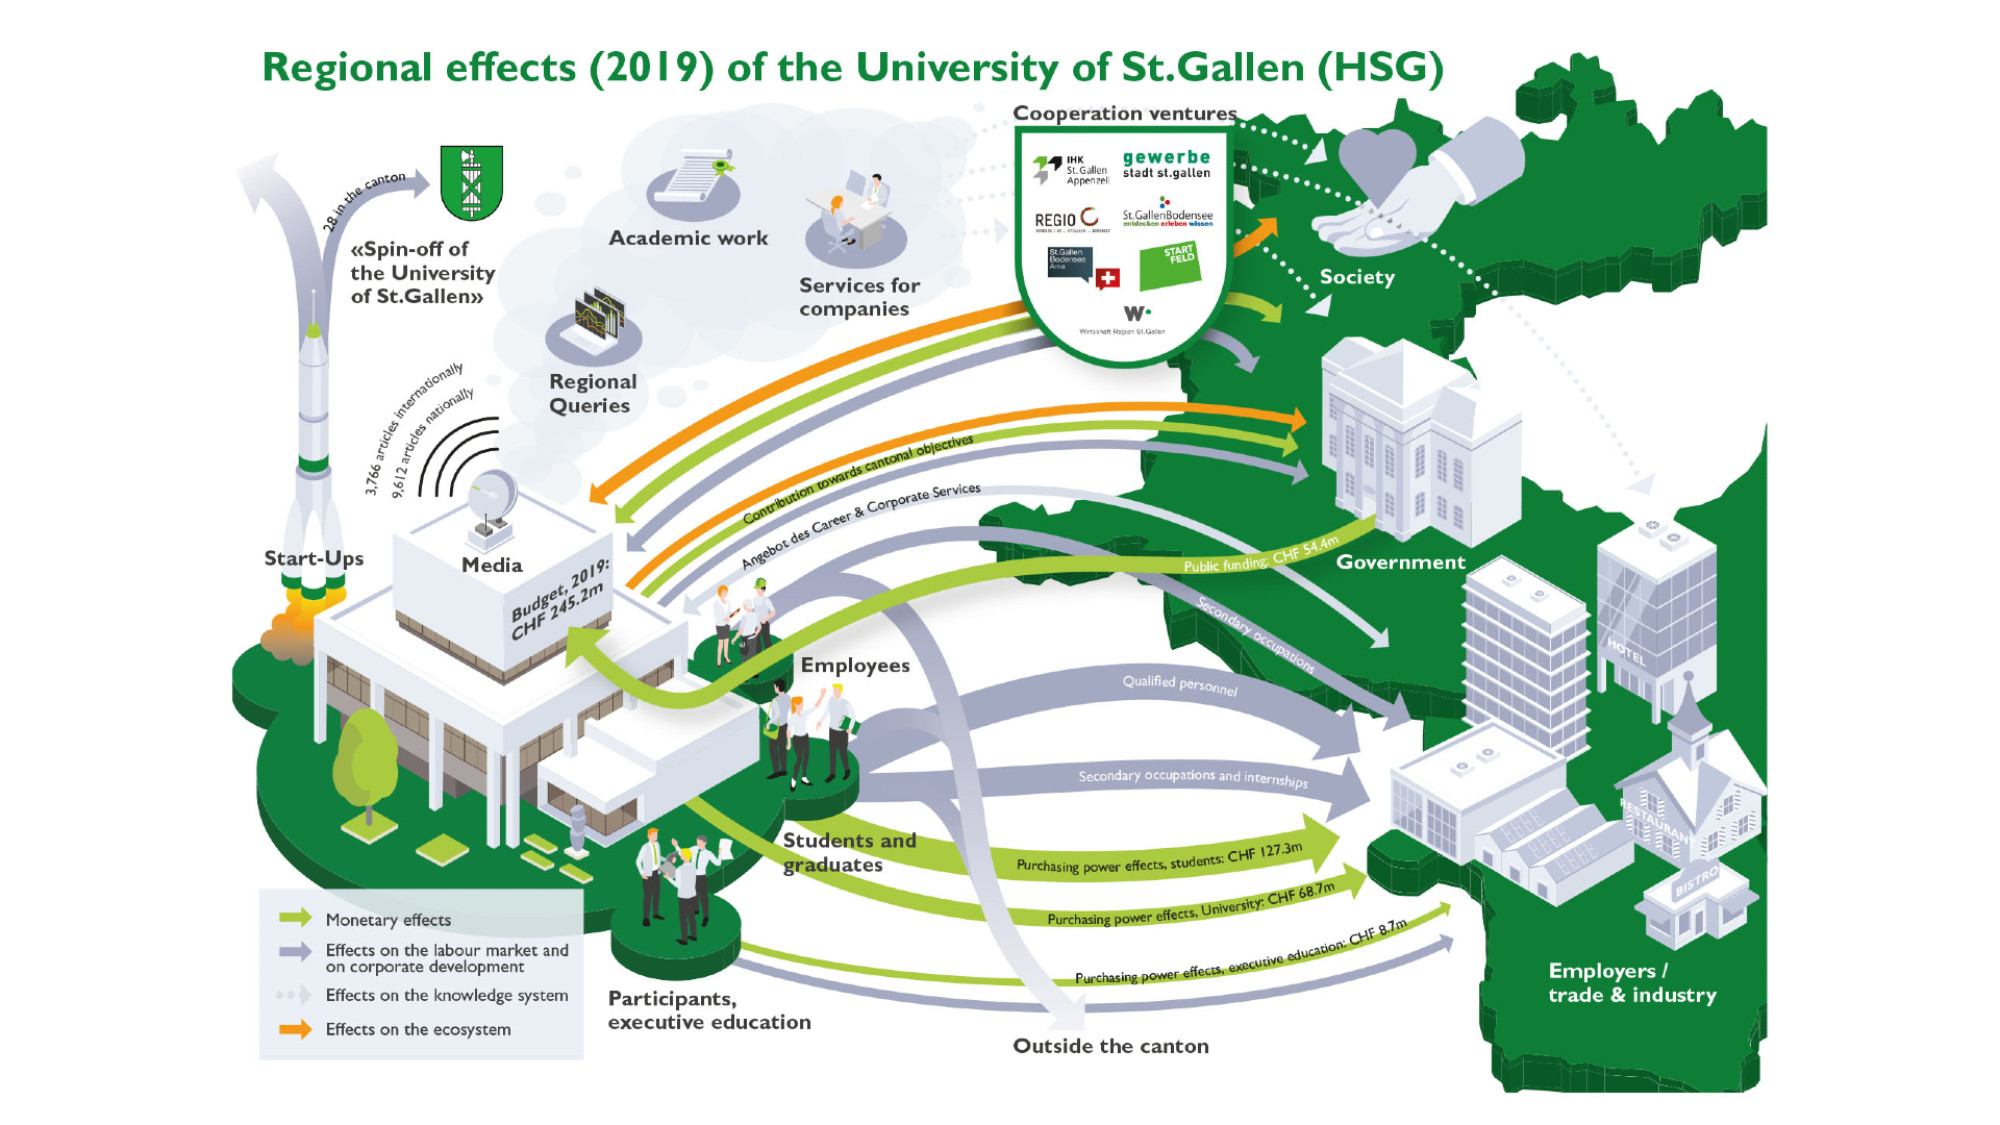 Regional effects of the HSG 2019